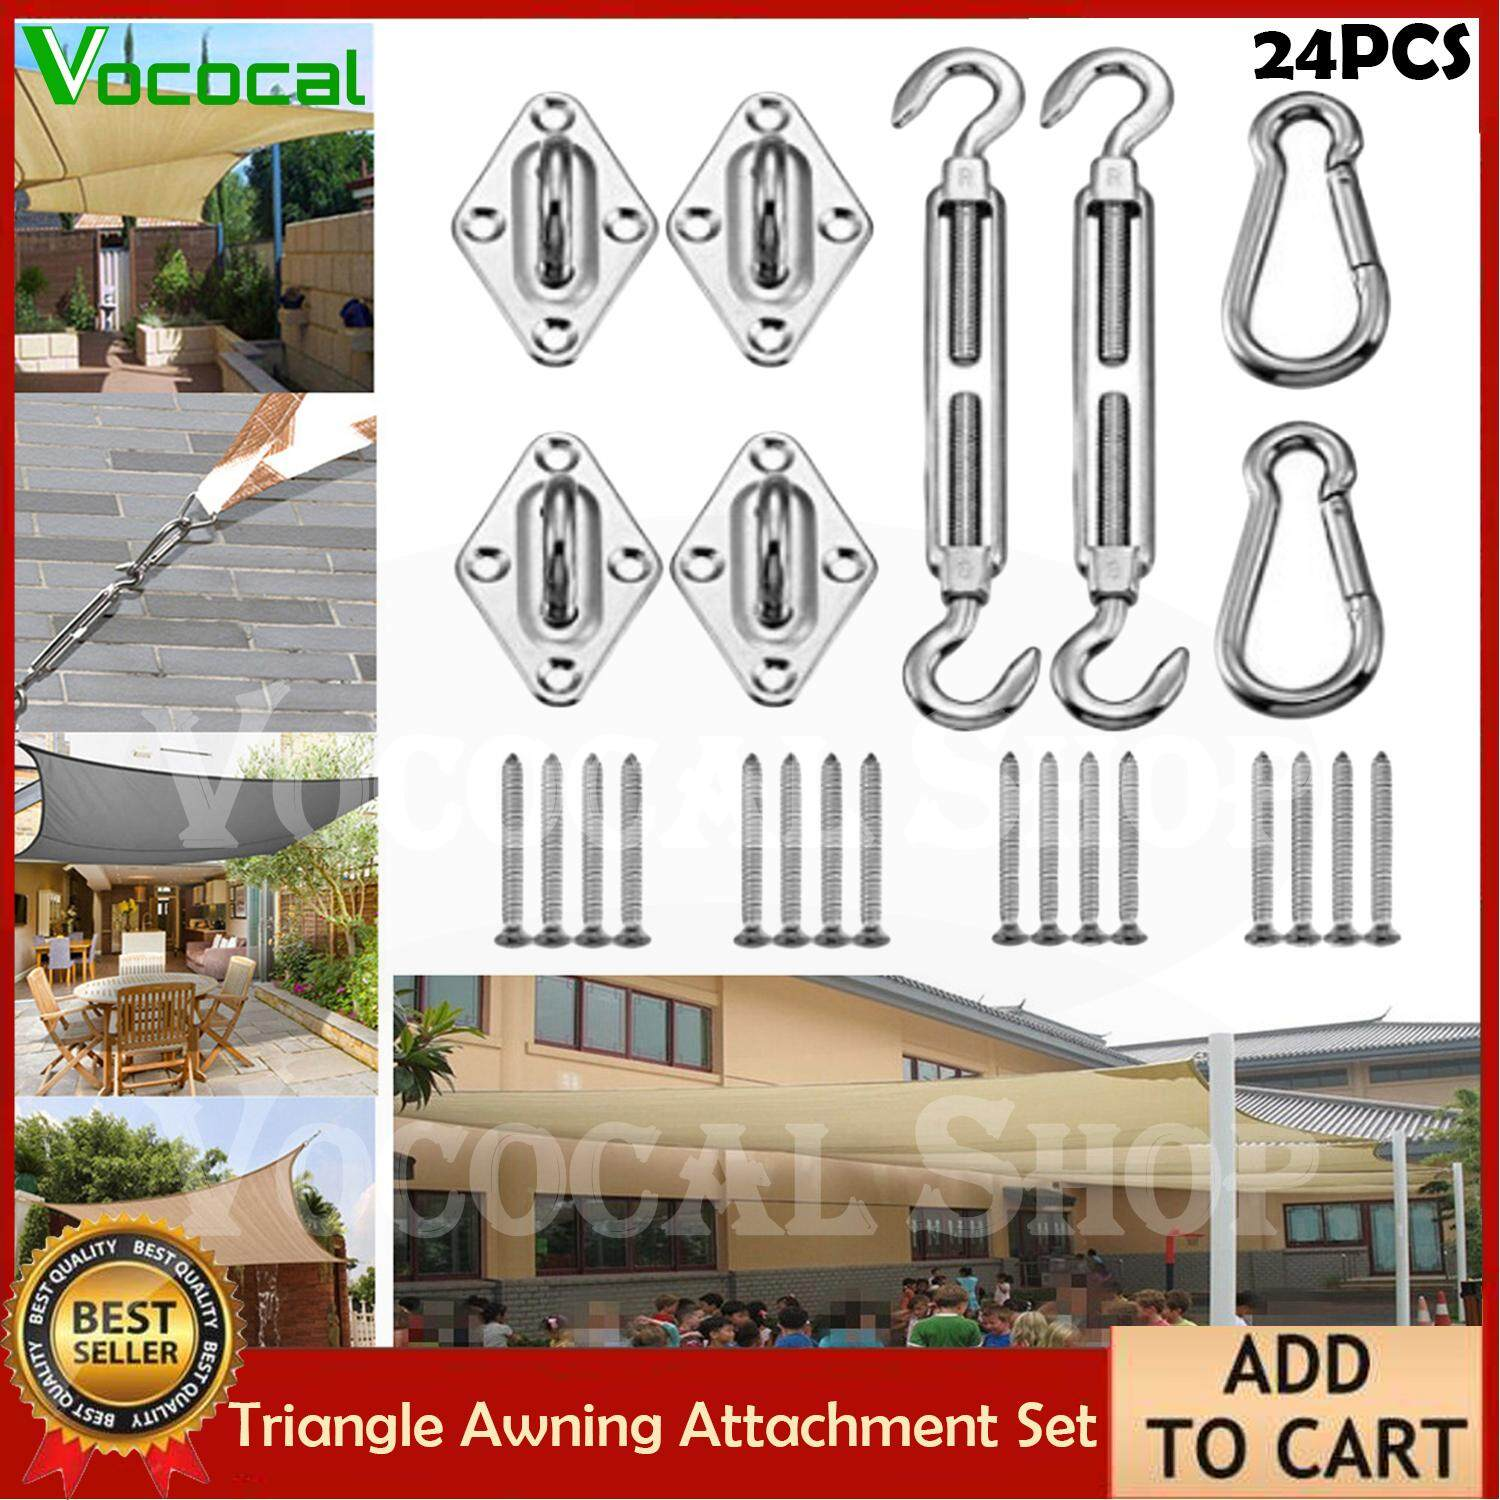 【In stock】Vococal 24PCS Triangle Awning Attachment Mounting Kits for Square or Rectangle Awning Sunshade Heavy Duty Sun Shade Sail Hardware Stainless Steel Accessories Assembly Set Suspension Easy Mounting in Garden